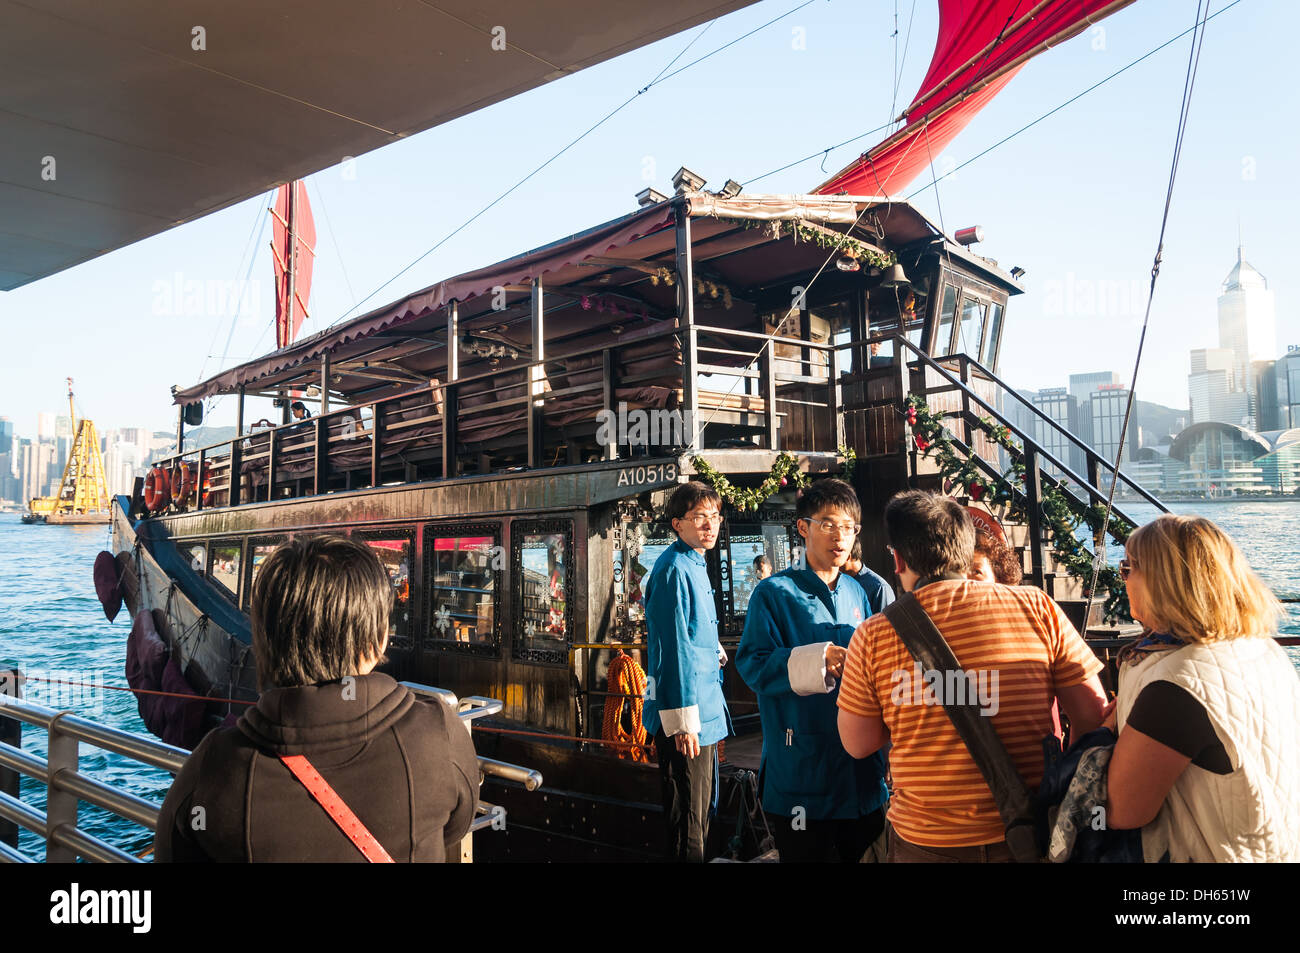 Boarding a traditional junk ship in Hong Kong. - Stock Image